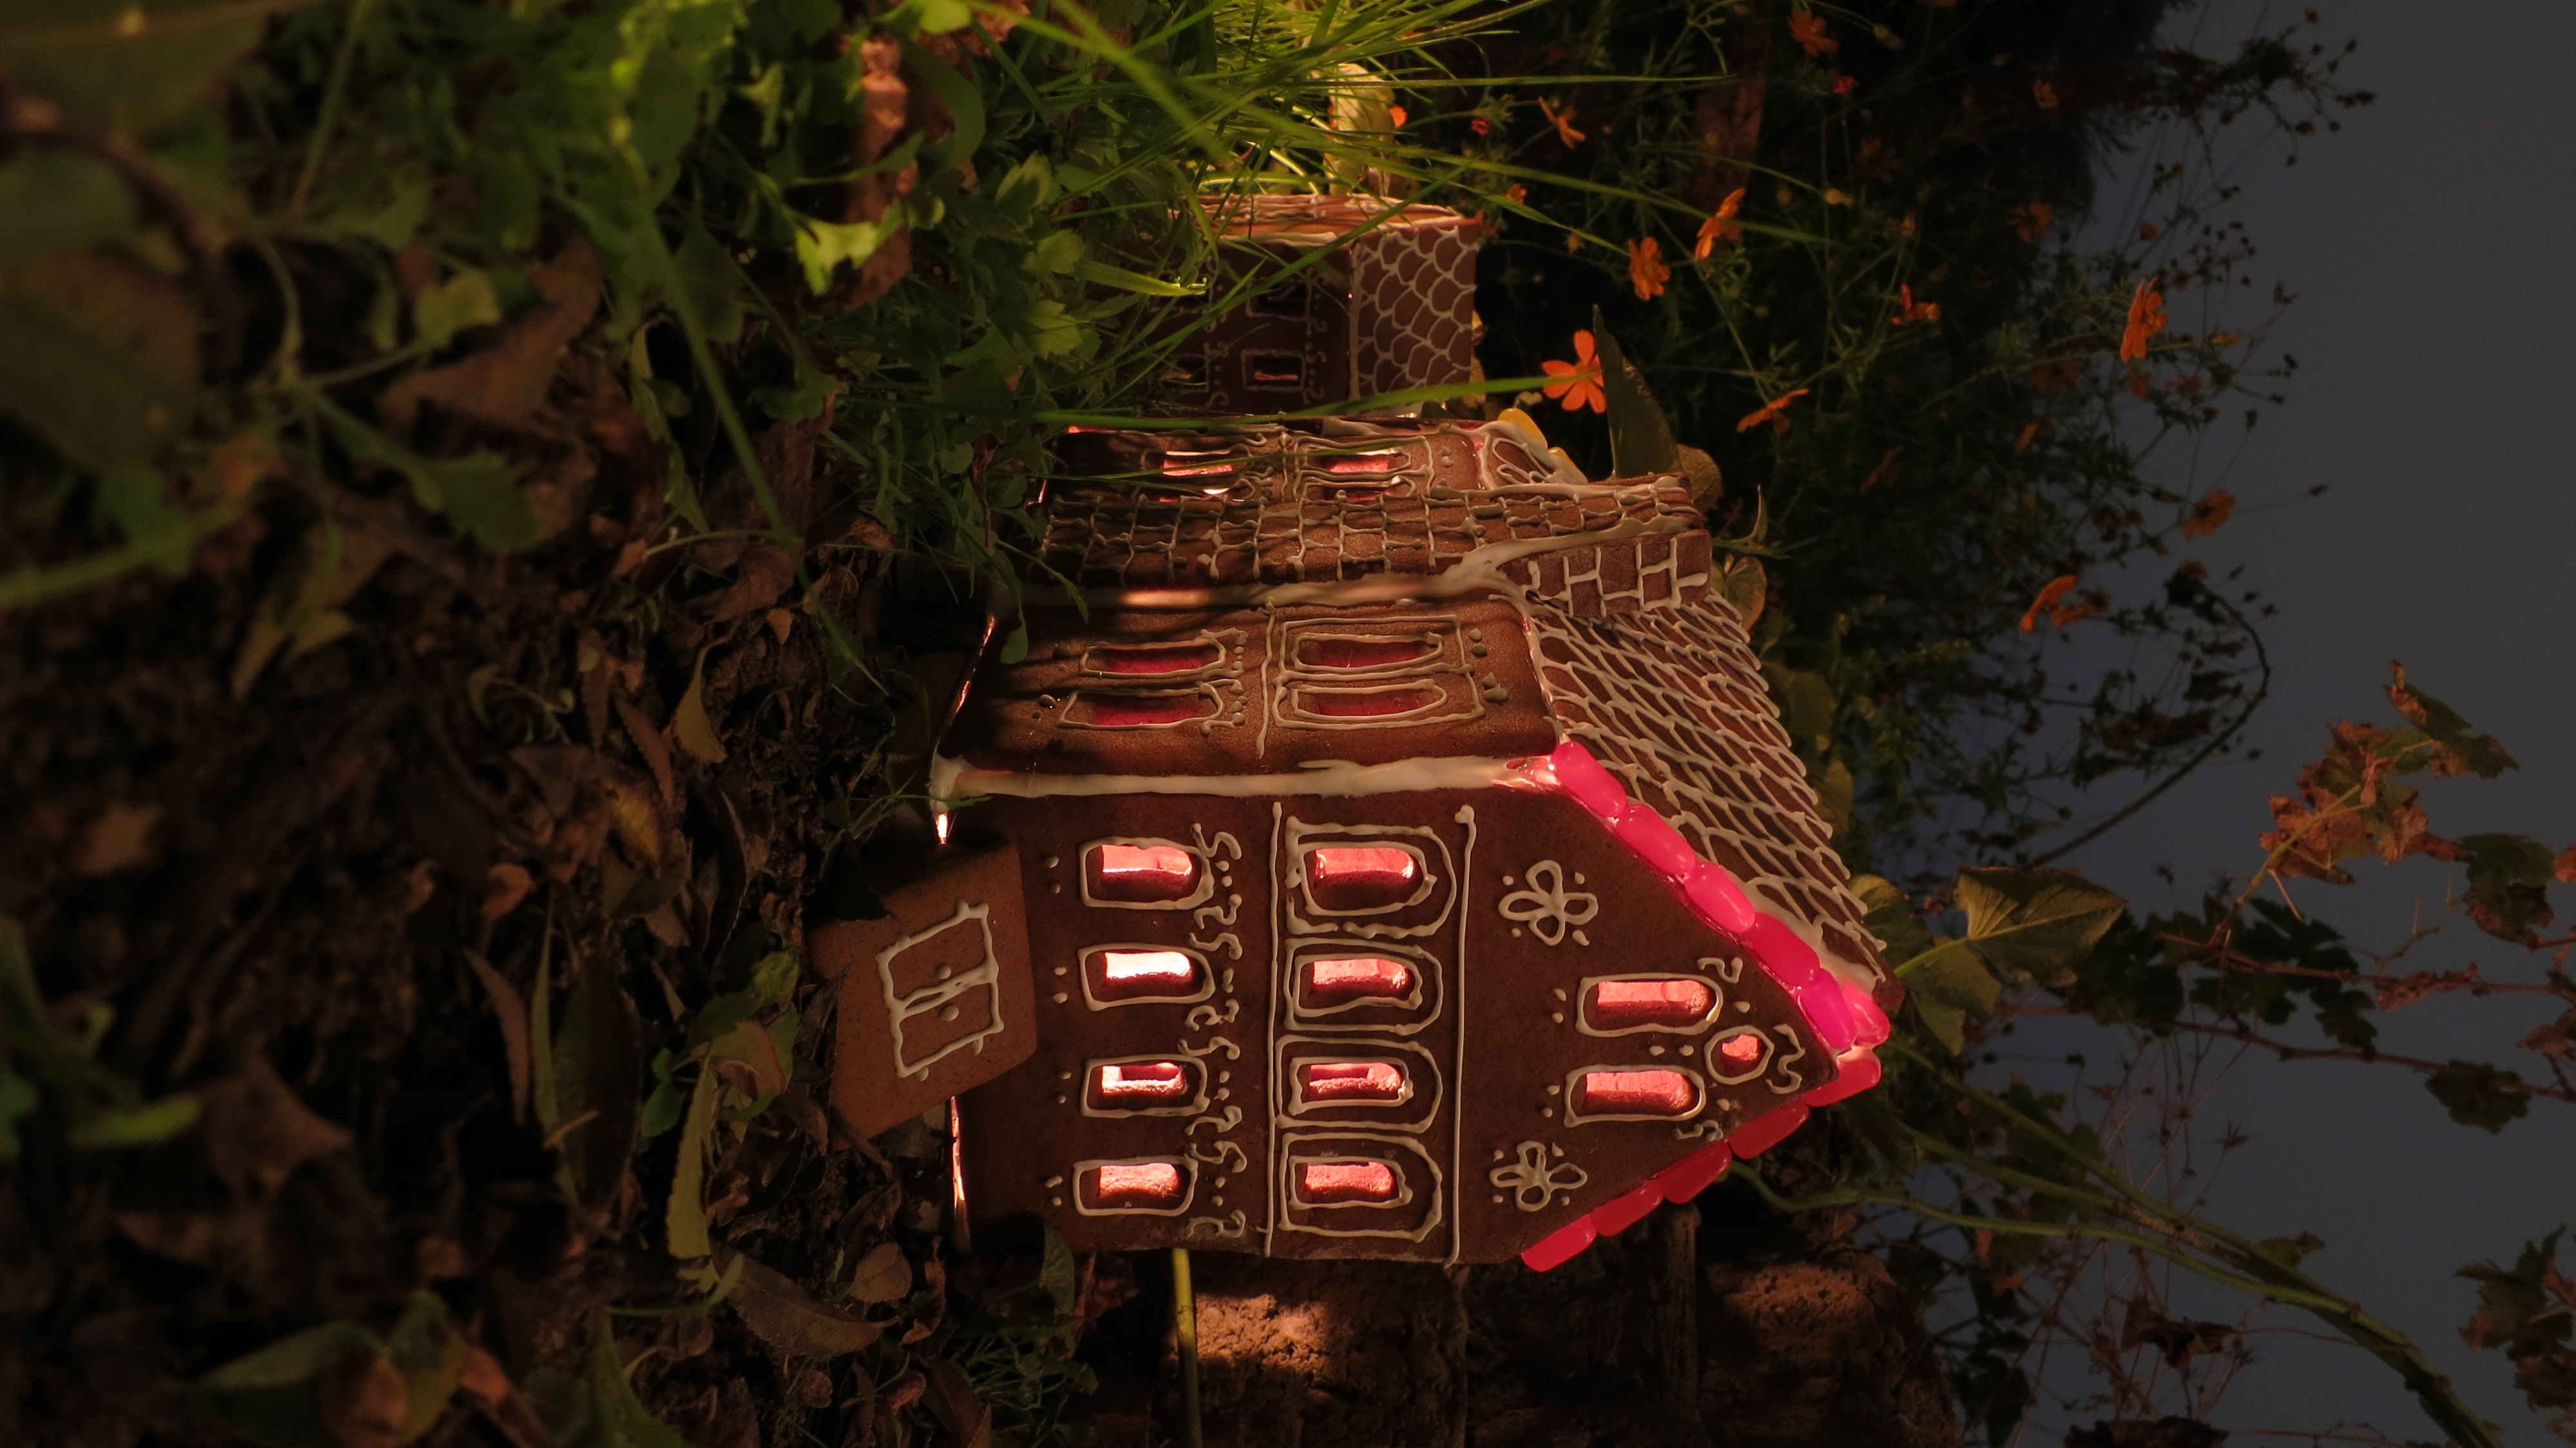 Gingerbread House Cover Kater S Art And Writing